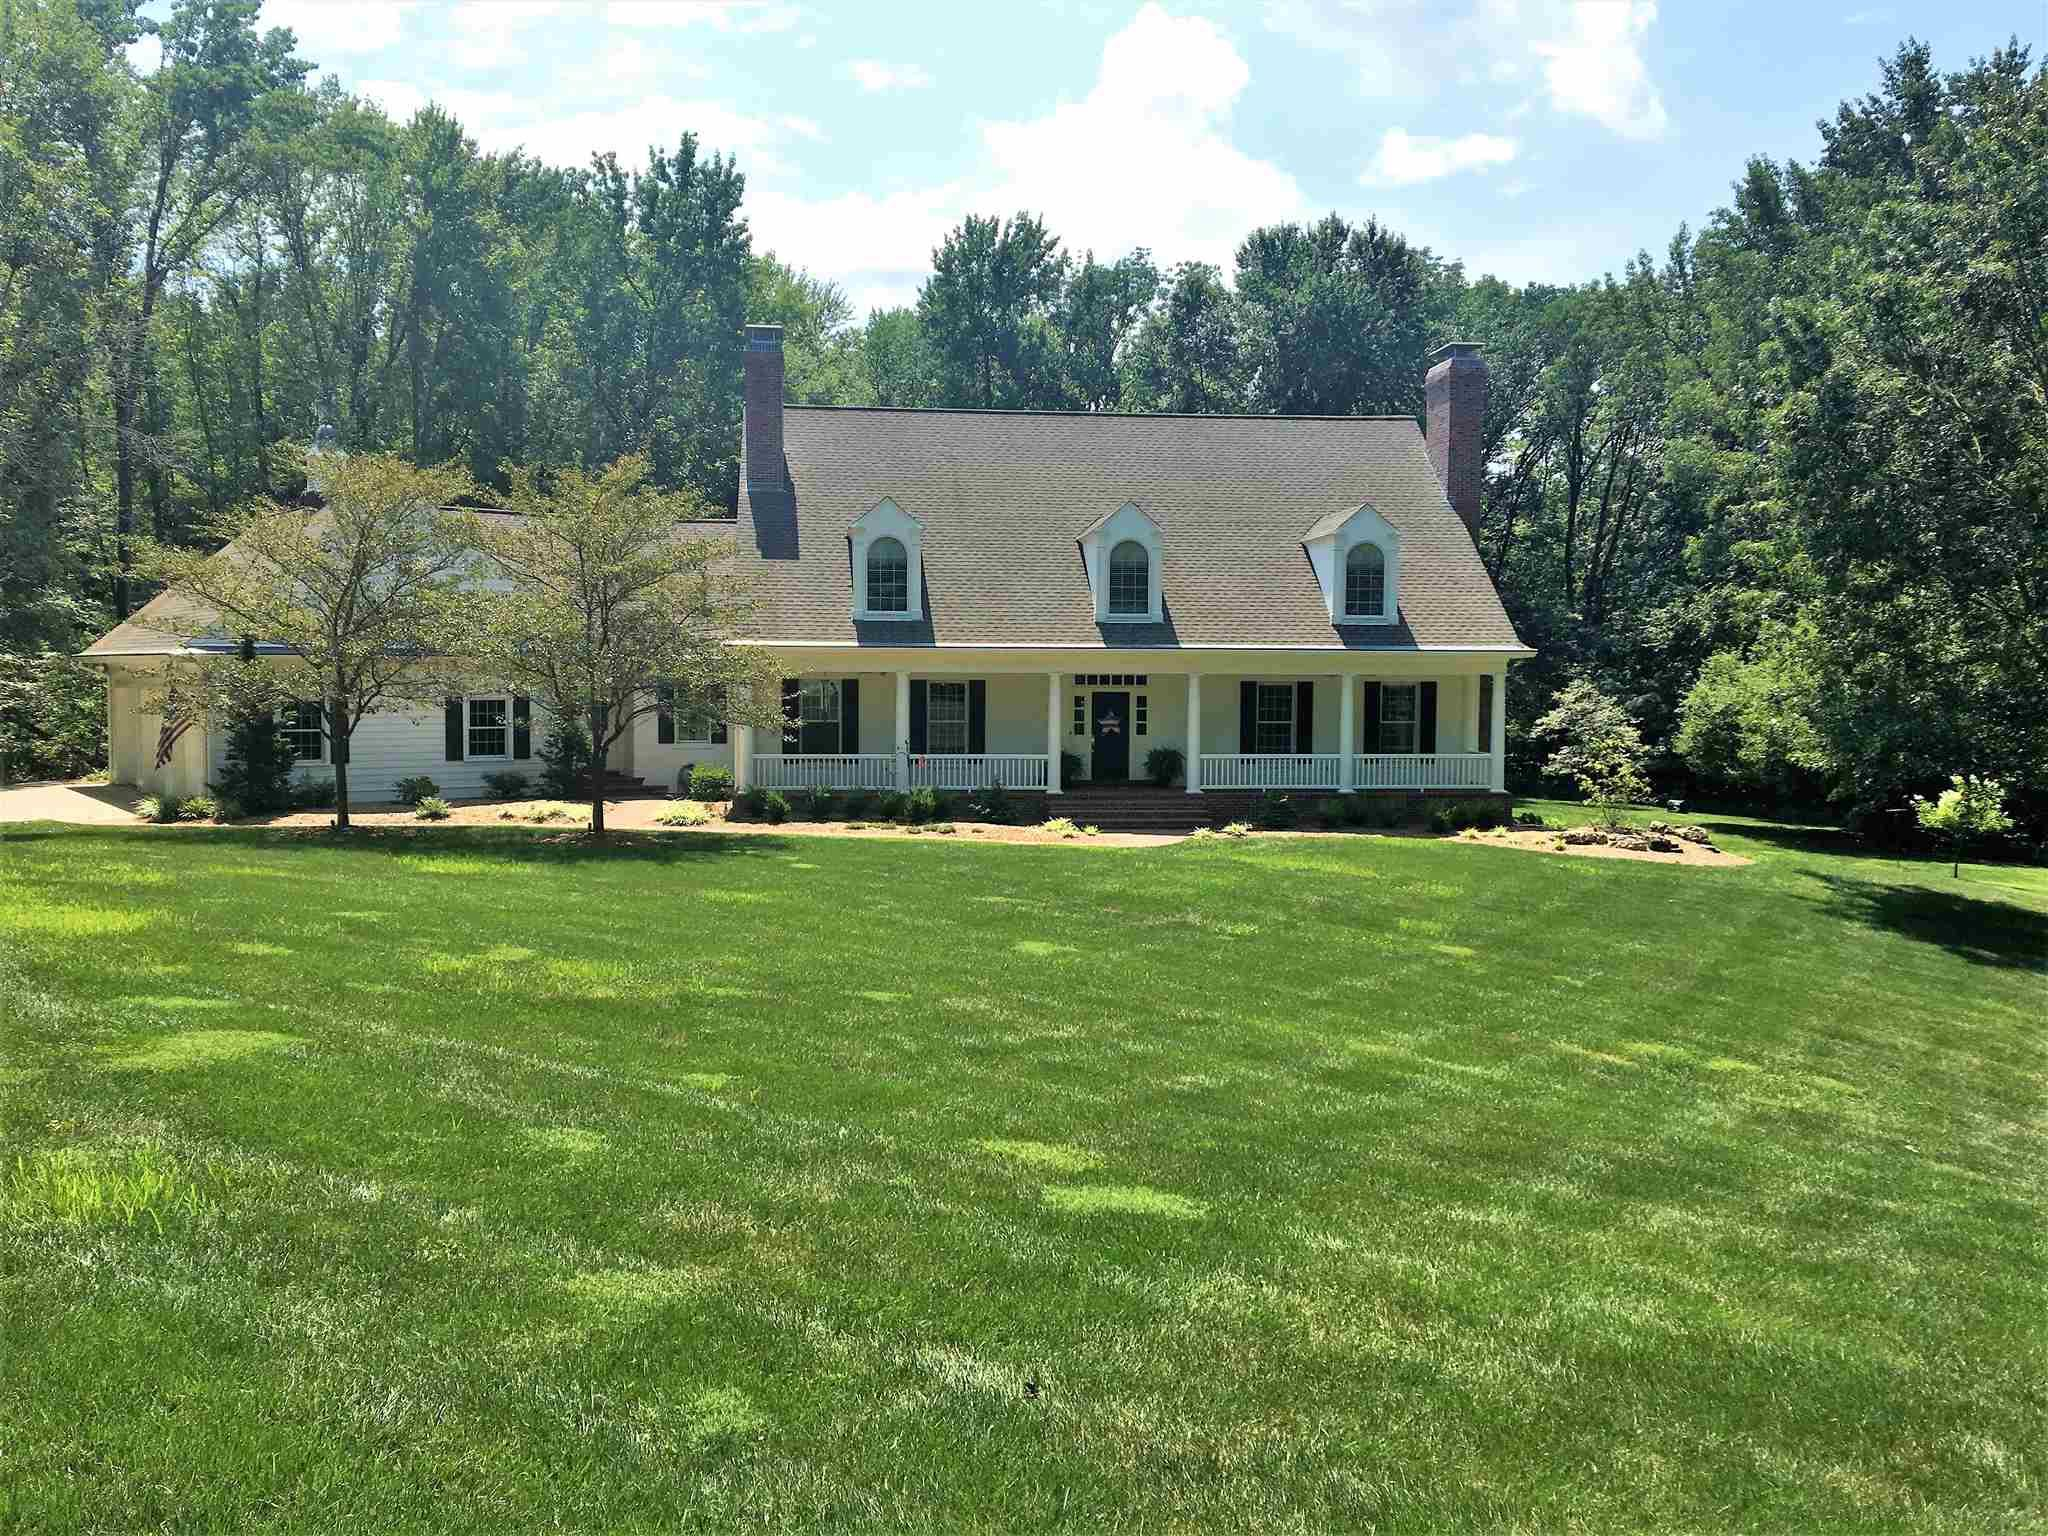 "Classic Cape Cod style custom built home by Randy Elpers. Tucked away at the end of a cul-de-sac this home offers privacy and seclusion amongst nature. Welcoming covered front porch is surrounded by new landscaping and brick walkway. Walk in the front door and you will immediately notice the attention to detail in this spacious home. Gleaming hardwood floors through-out most of the home. The entire home was built and remodeled with Fehrenbacher custom cabinetry, crown molding, wood trim, baseboards and solid wood doors. The inviting 2 story foyer opens to the LR with gas log fireplace and the elegant formal DR. The Den features solid natural cherry panels with built-in bookcases, a built-in desk and gas log fireplace.Updated eat-in Kitchen is a chef's delight with Quartz tops plus a center island eating bar and a walk-in pantry. Thermador appliances with a 6 burner gas range/hood, double ovens and heat lights to keep food warm. The Kitchen is open to the Great room making it ideal for entertaining. Main level Master BR with high ceiling adjoins the Master BA which is complete with dual vanities, walk-in tiled shower, marble floor and walk-in closet. The guest half bath and laundry room completes the main level. Front and back stairs allow for easy access to the 2nd level. Upstairs you will find 3 oversized Bedrooms and a Bonus Room. One BR features a private full BA with tiled shower. The other 2 BRs share a Jack and Jill bath. The Bonus room is a great area for kids. The walk-out LL, remodeled by Randy Elpers in 2017, includes a media area with 105"" TV screen, stone fireplace, game area and high top bar, cabinets and granite tops. Entertaining will be easy with a full size DW, refrigerator and a wine cooler. The 5th BR has easy access to the full BA. French doors open to the side patio and yard. You will love spending time on the screened porch and patio with outdoor grilling space. This is truly a special home. Complete list of updates/details in the home."